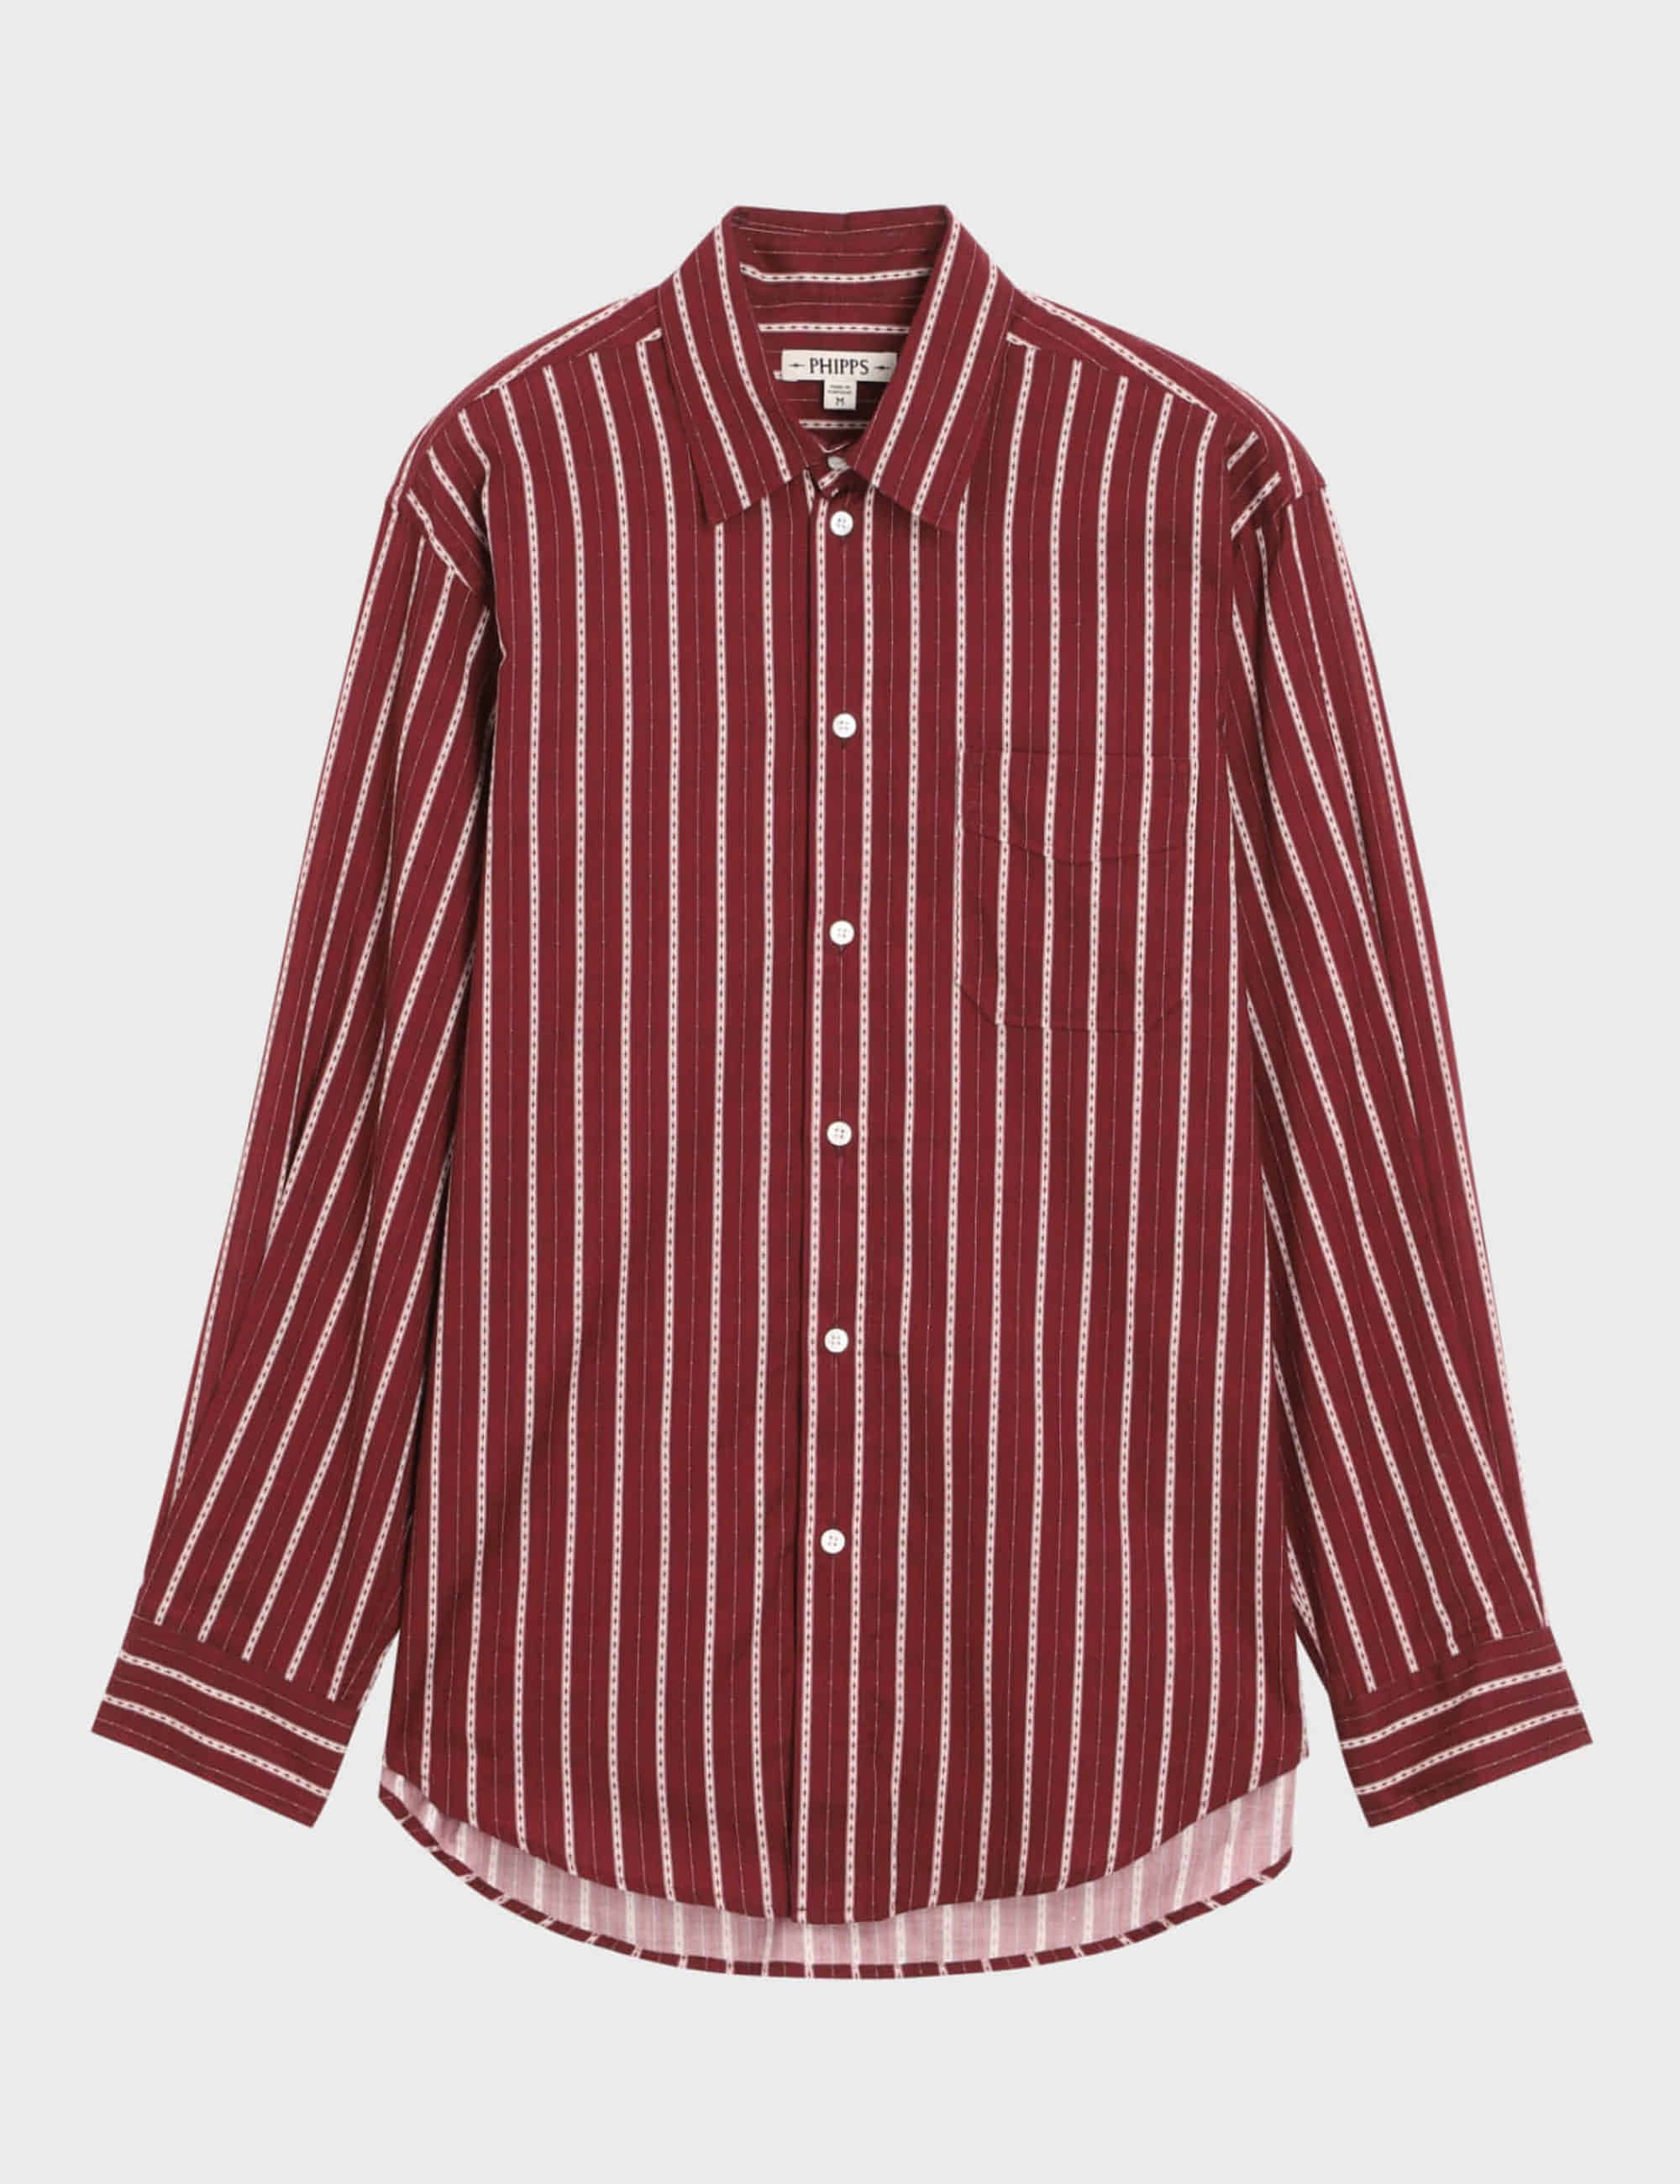 L/S CLASSIC SHIRT_RED STRIPE